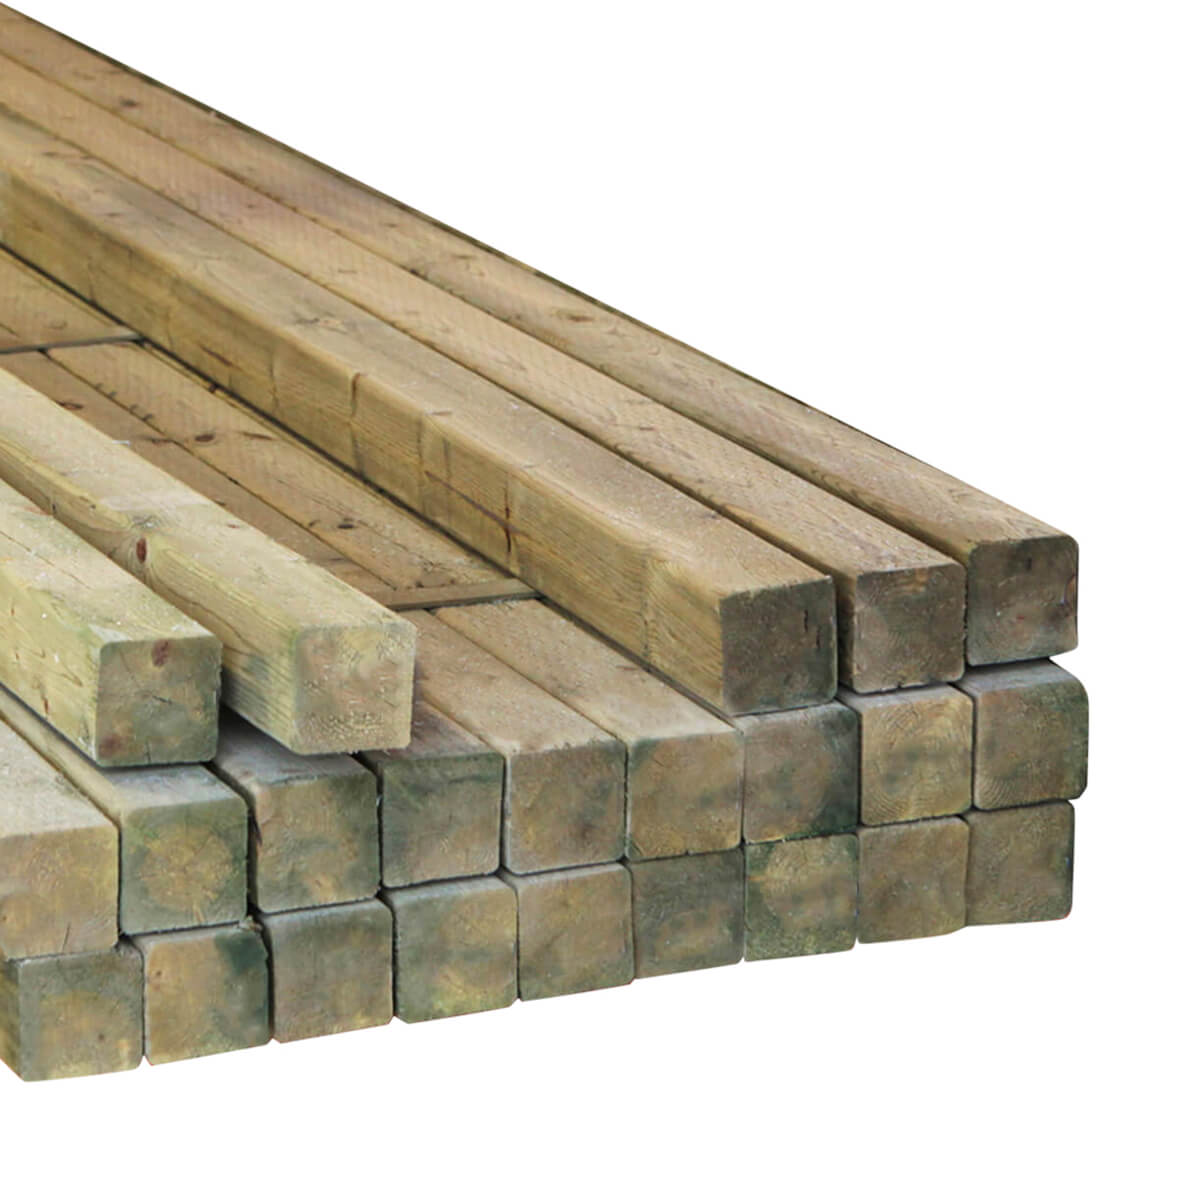 Rough CCA Treated Timbers - 4 x 6 x 18'